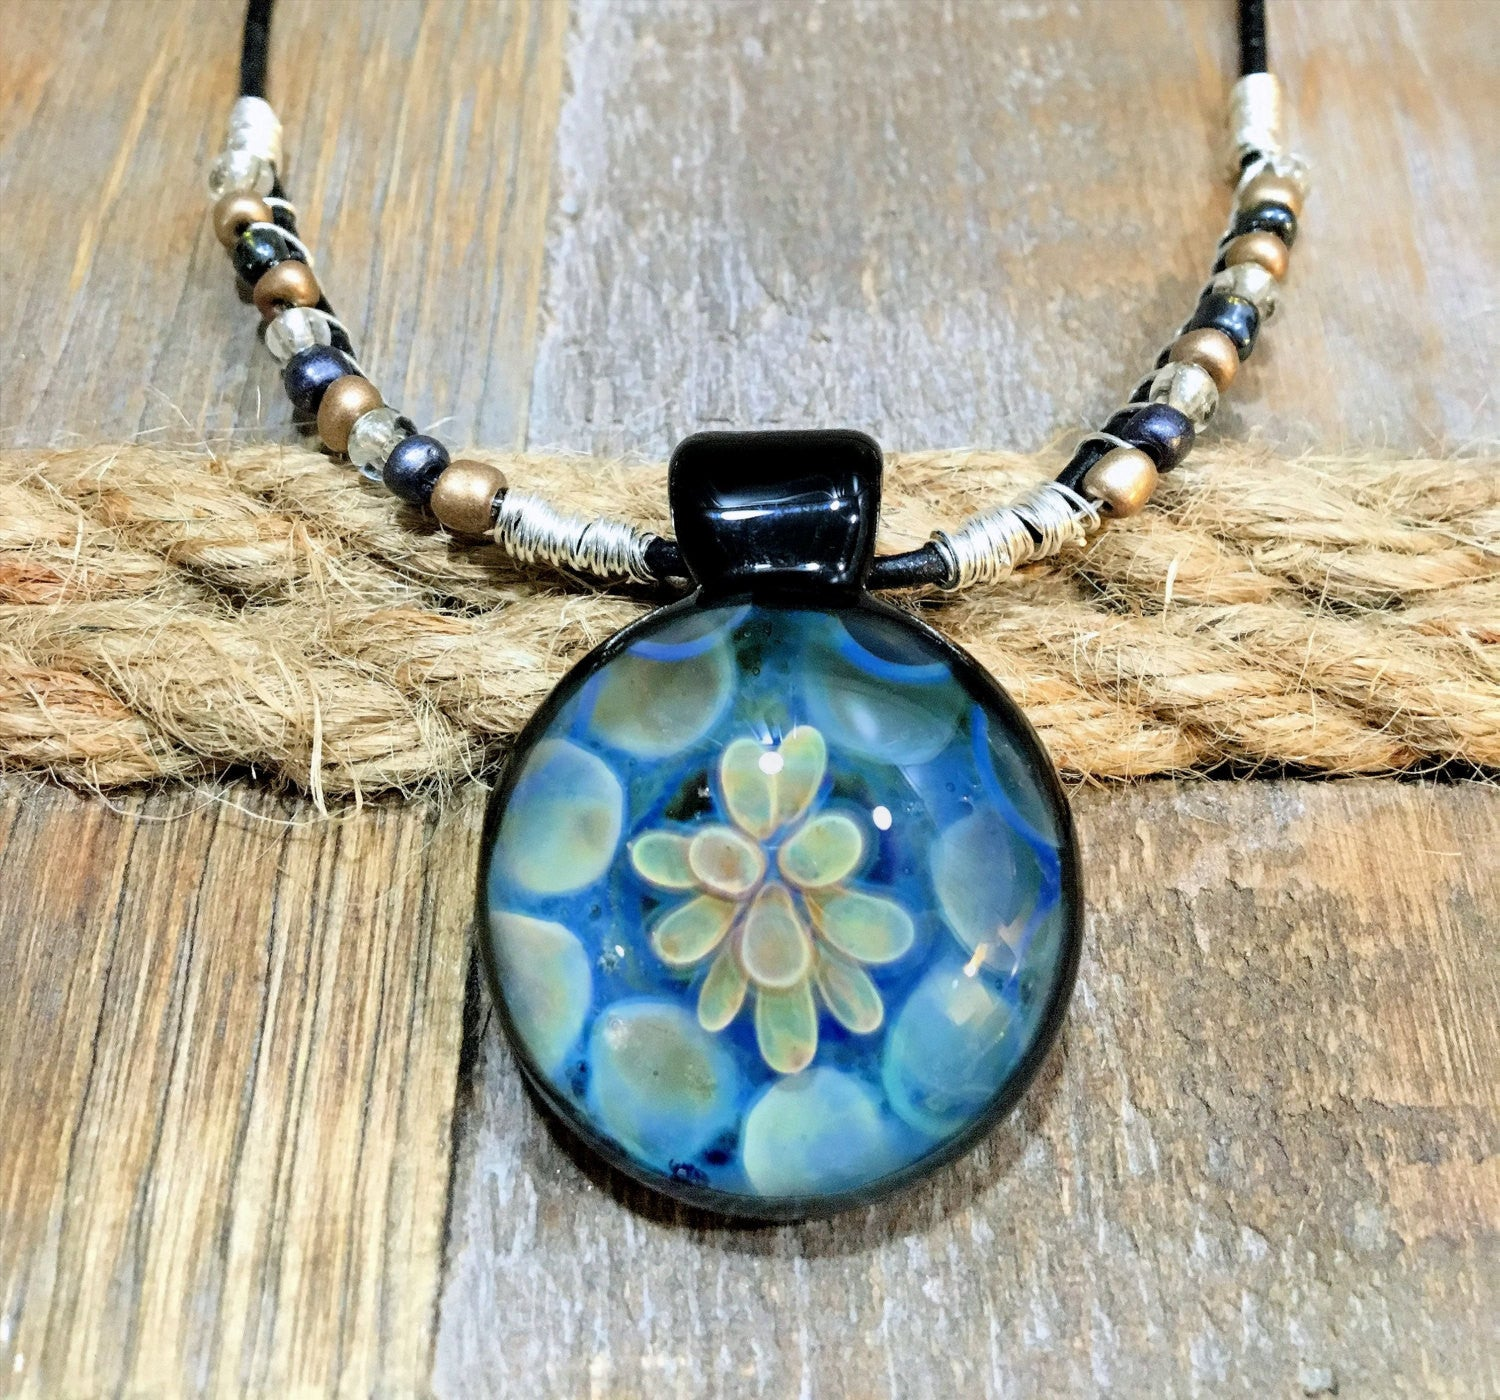 Silver & Gold Fumed Flower Pendant & Necklace, Lampwork Glass Jewelry (FGB7096a)